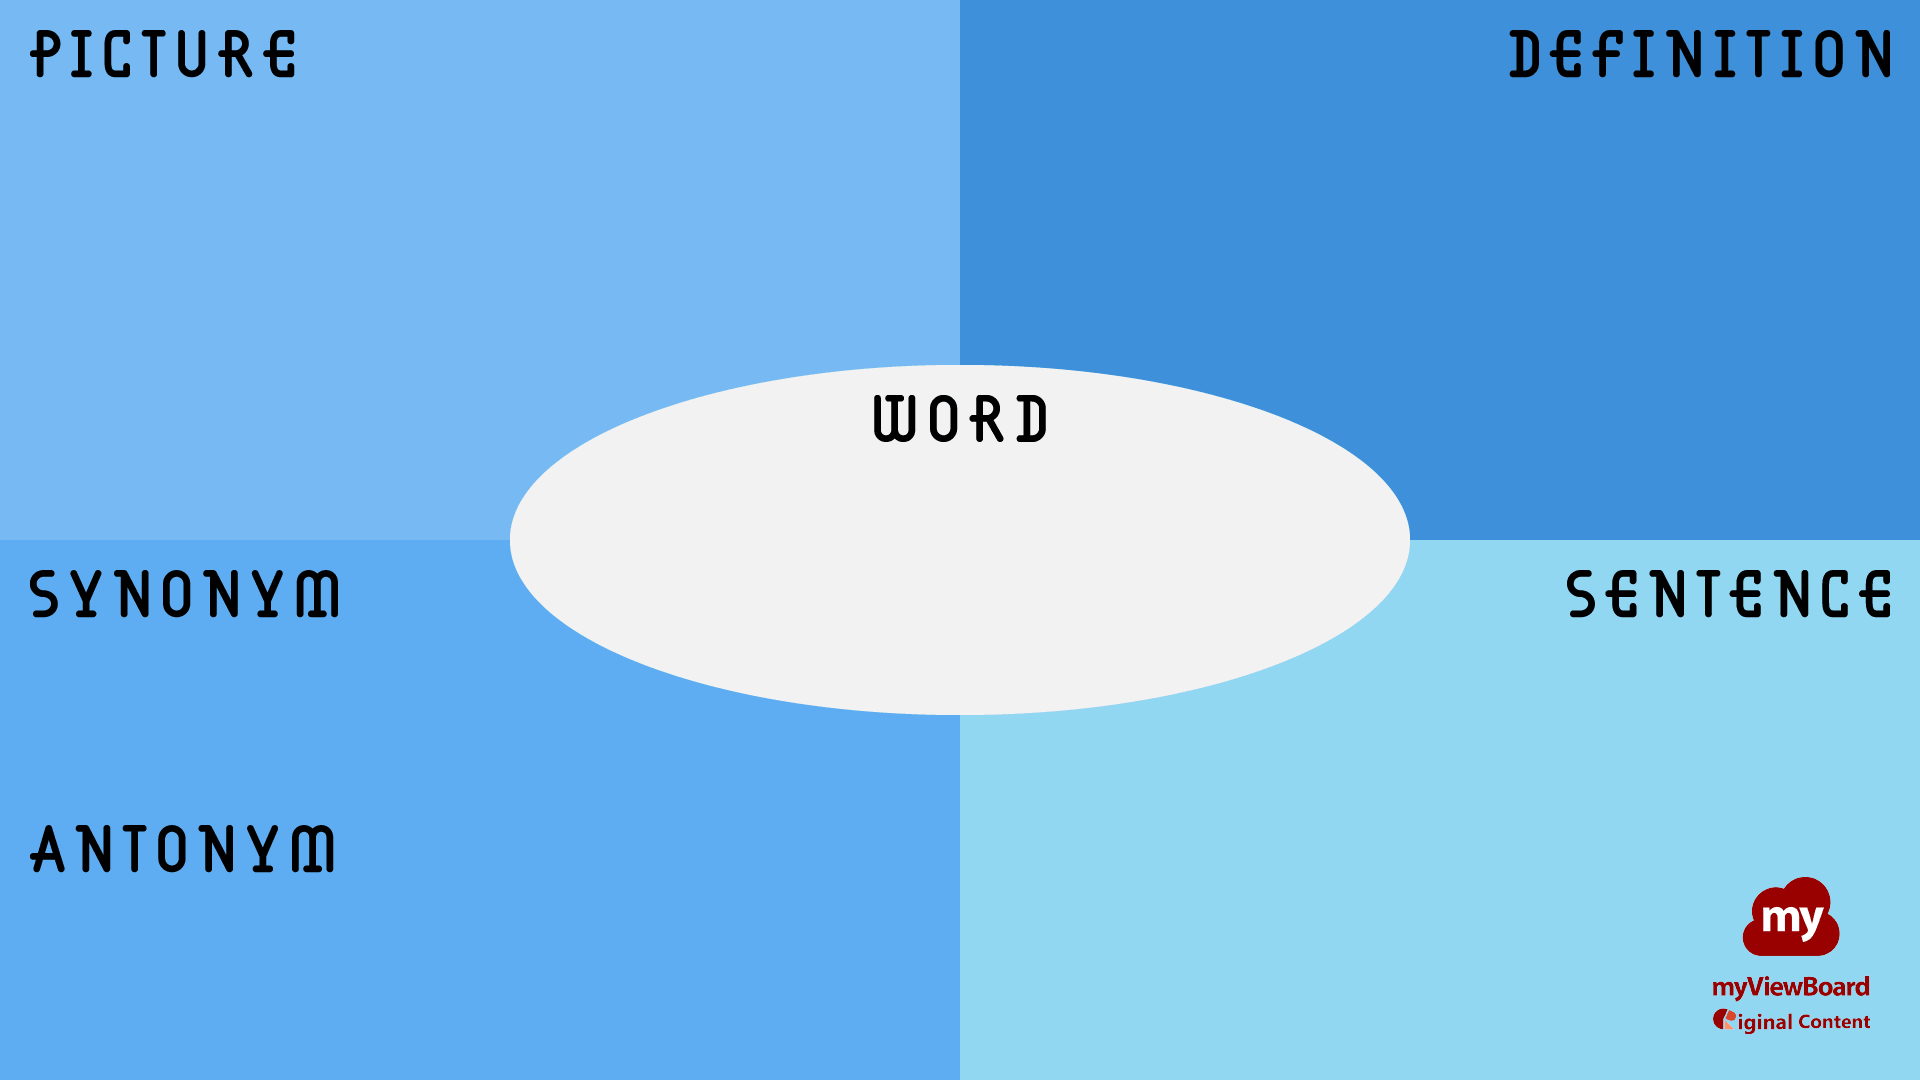 OCBnew thumbnail 4-square vocabulary(logo) oval FHD.png